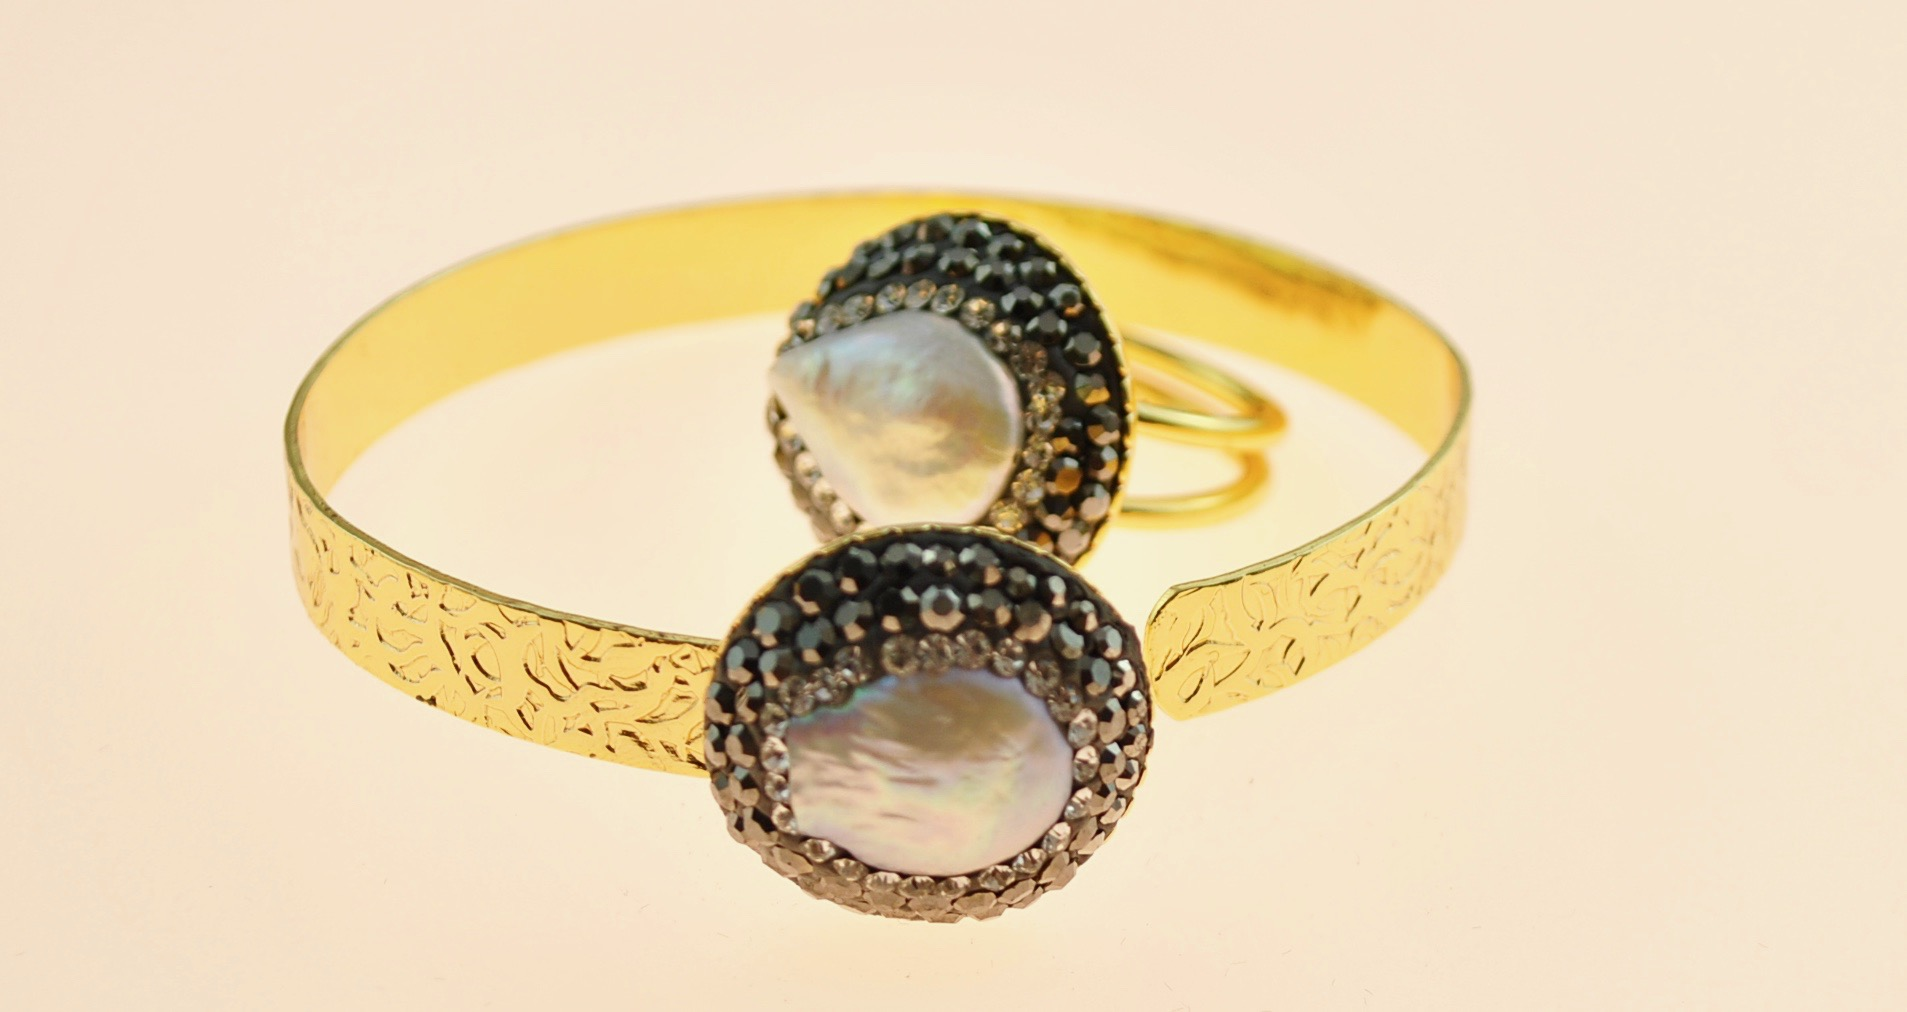 22k Gold vermeil adjustable bangle and ring with mother of pearl